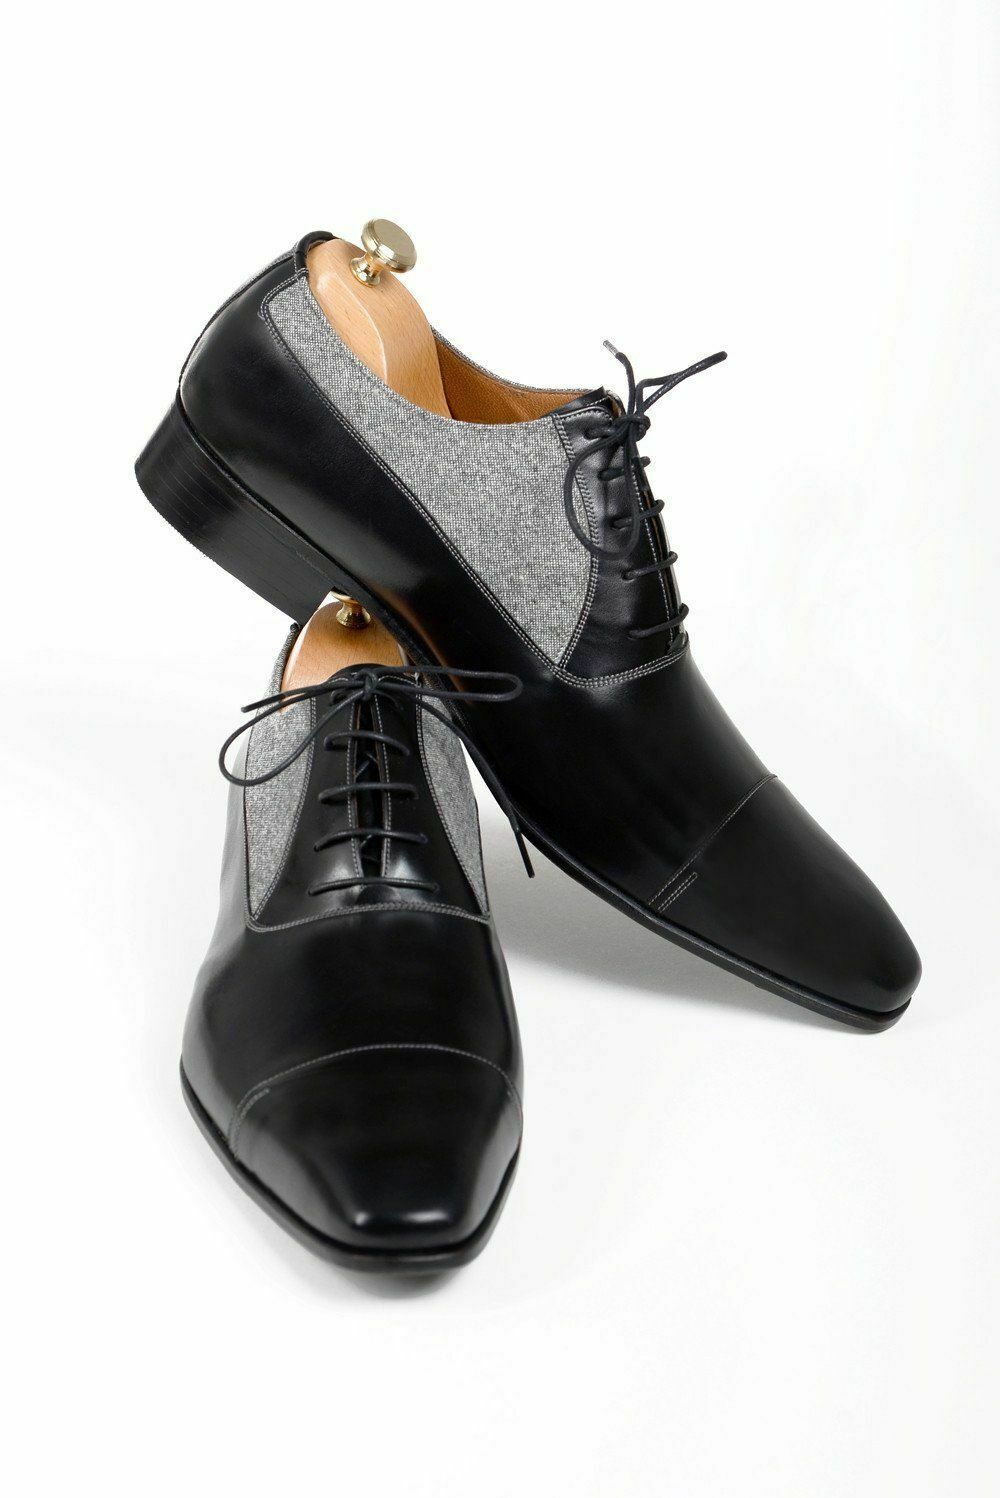 Handmade Men's Black Leather and Tweed Two Tone Dress/Formal Oxford Shoes